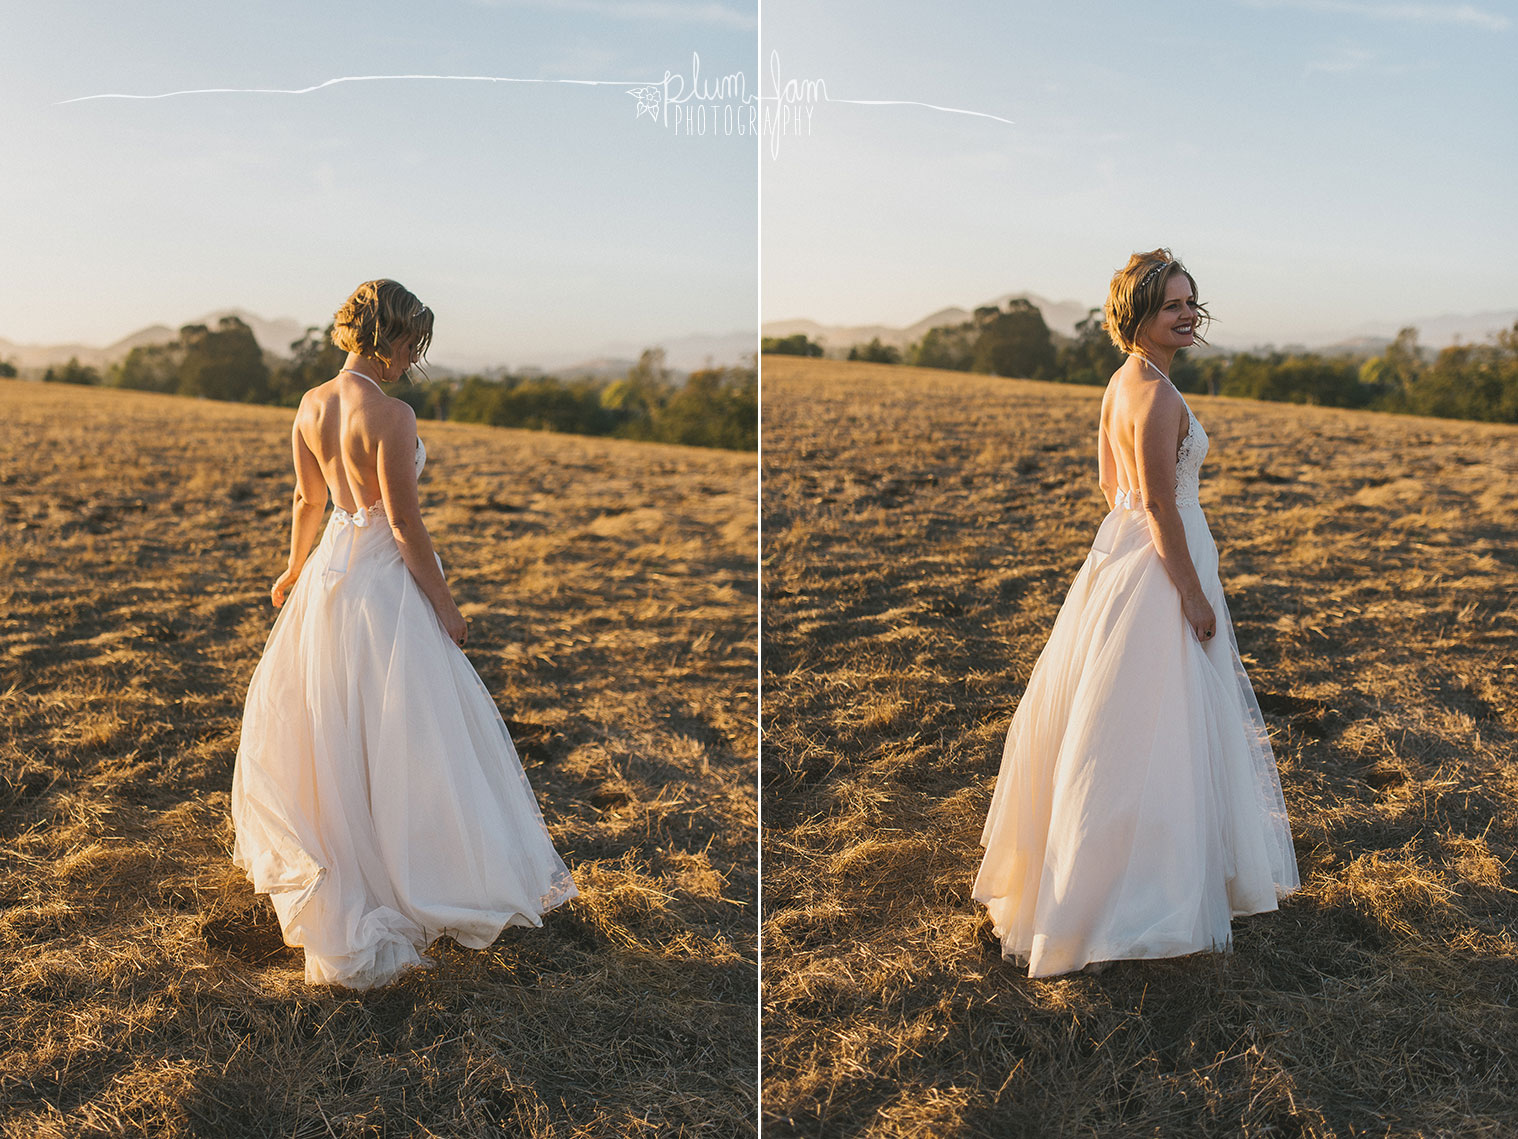 AshleyTylerWedding-Blog-028-PlumJamPhotography